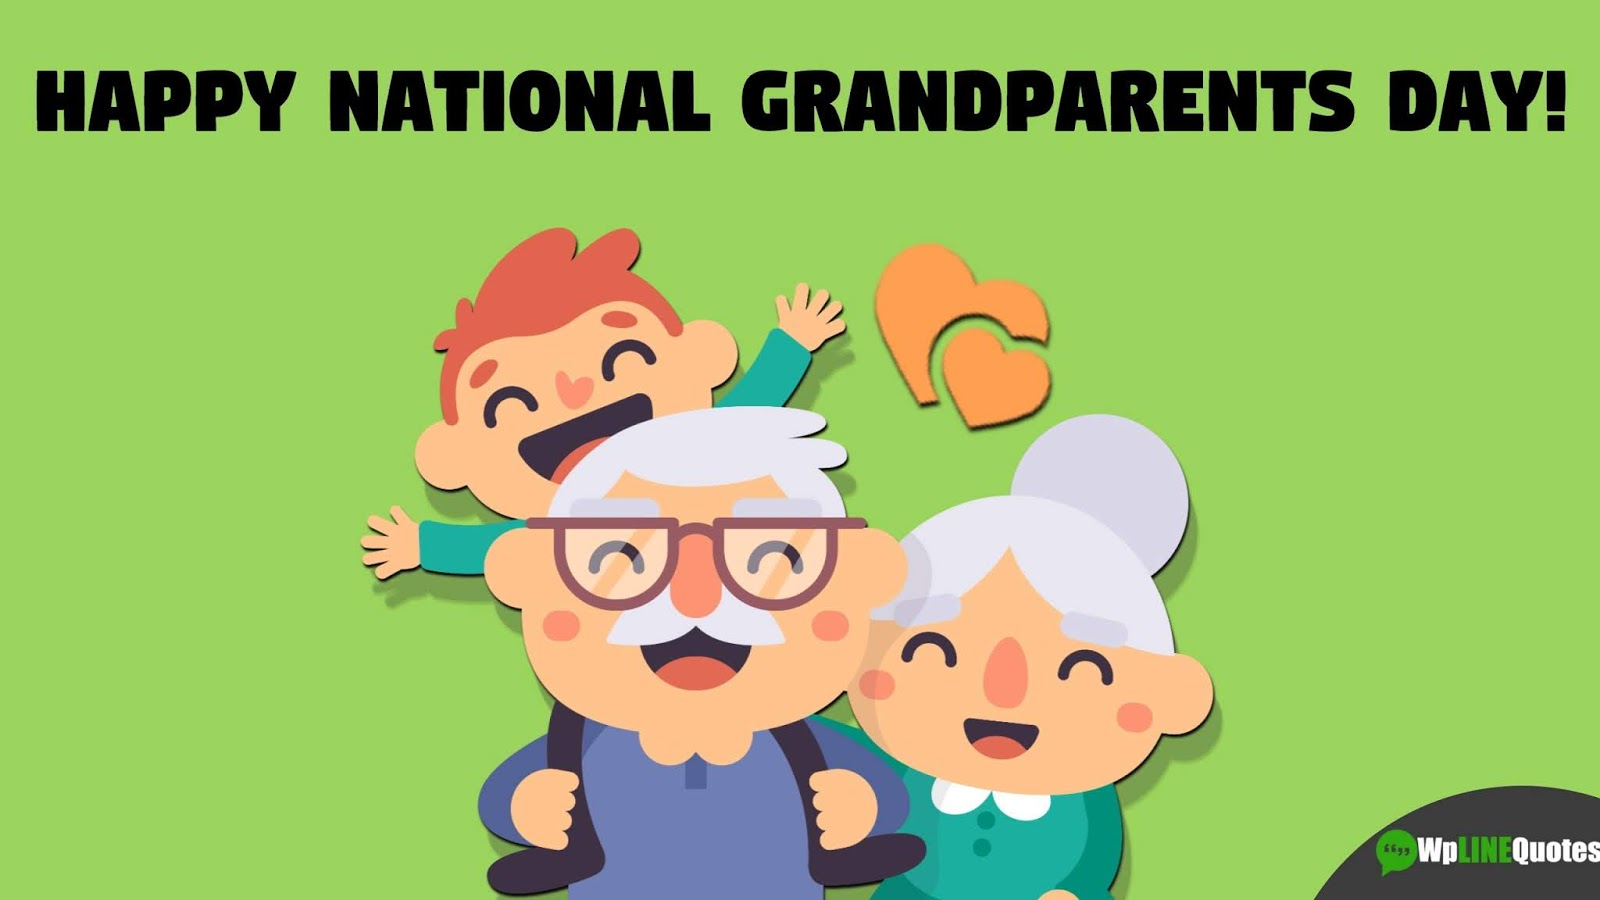 Best Happy National Grandparents Day 2019 Quotes, Wishes, Images and Messages